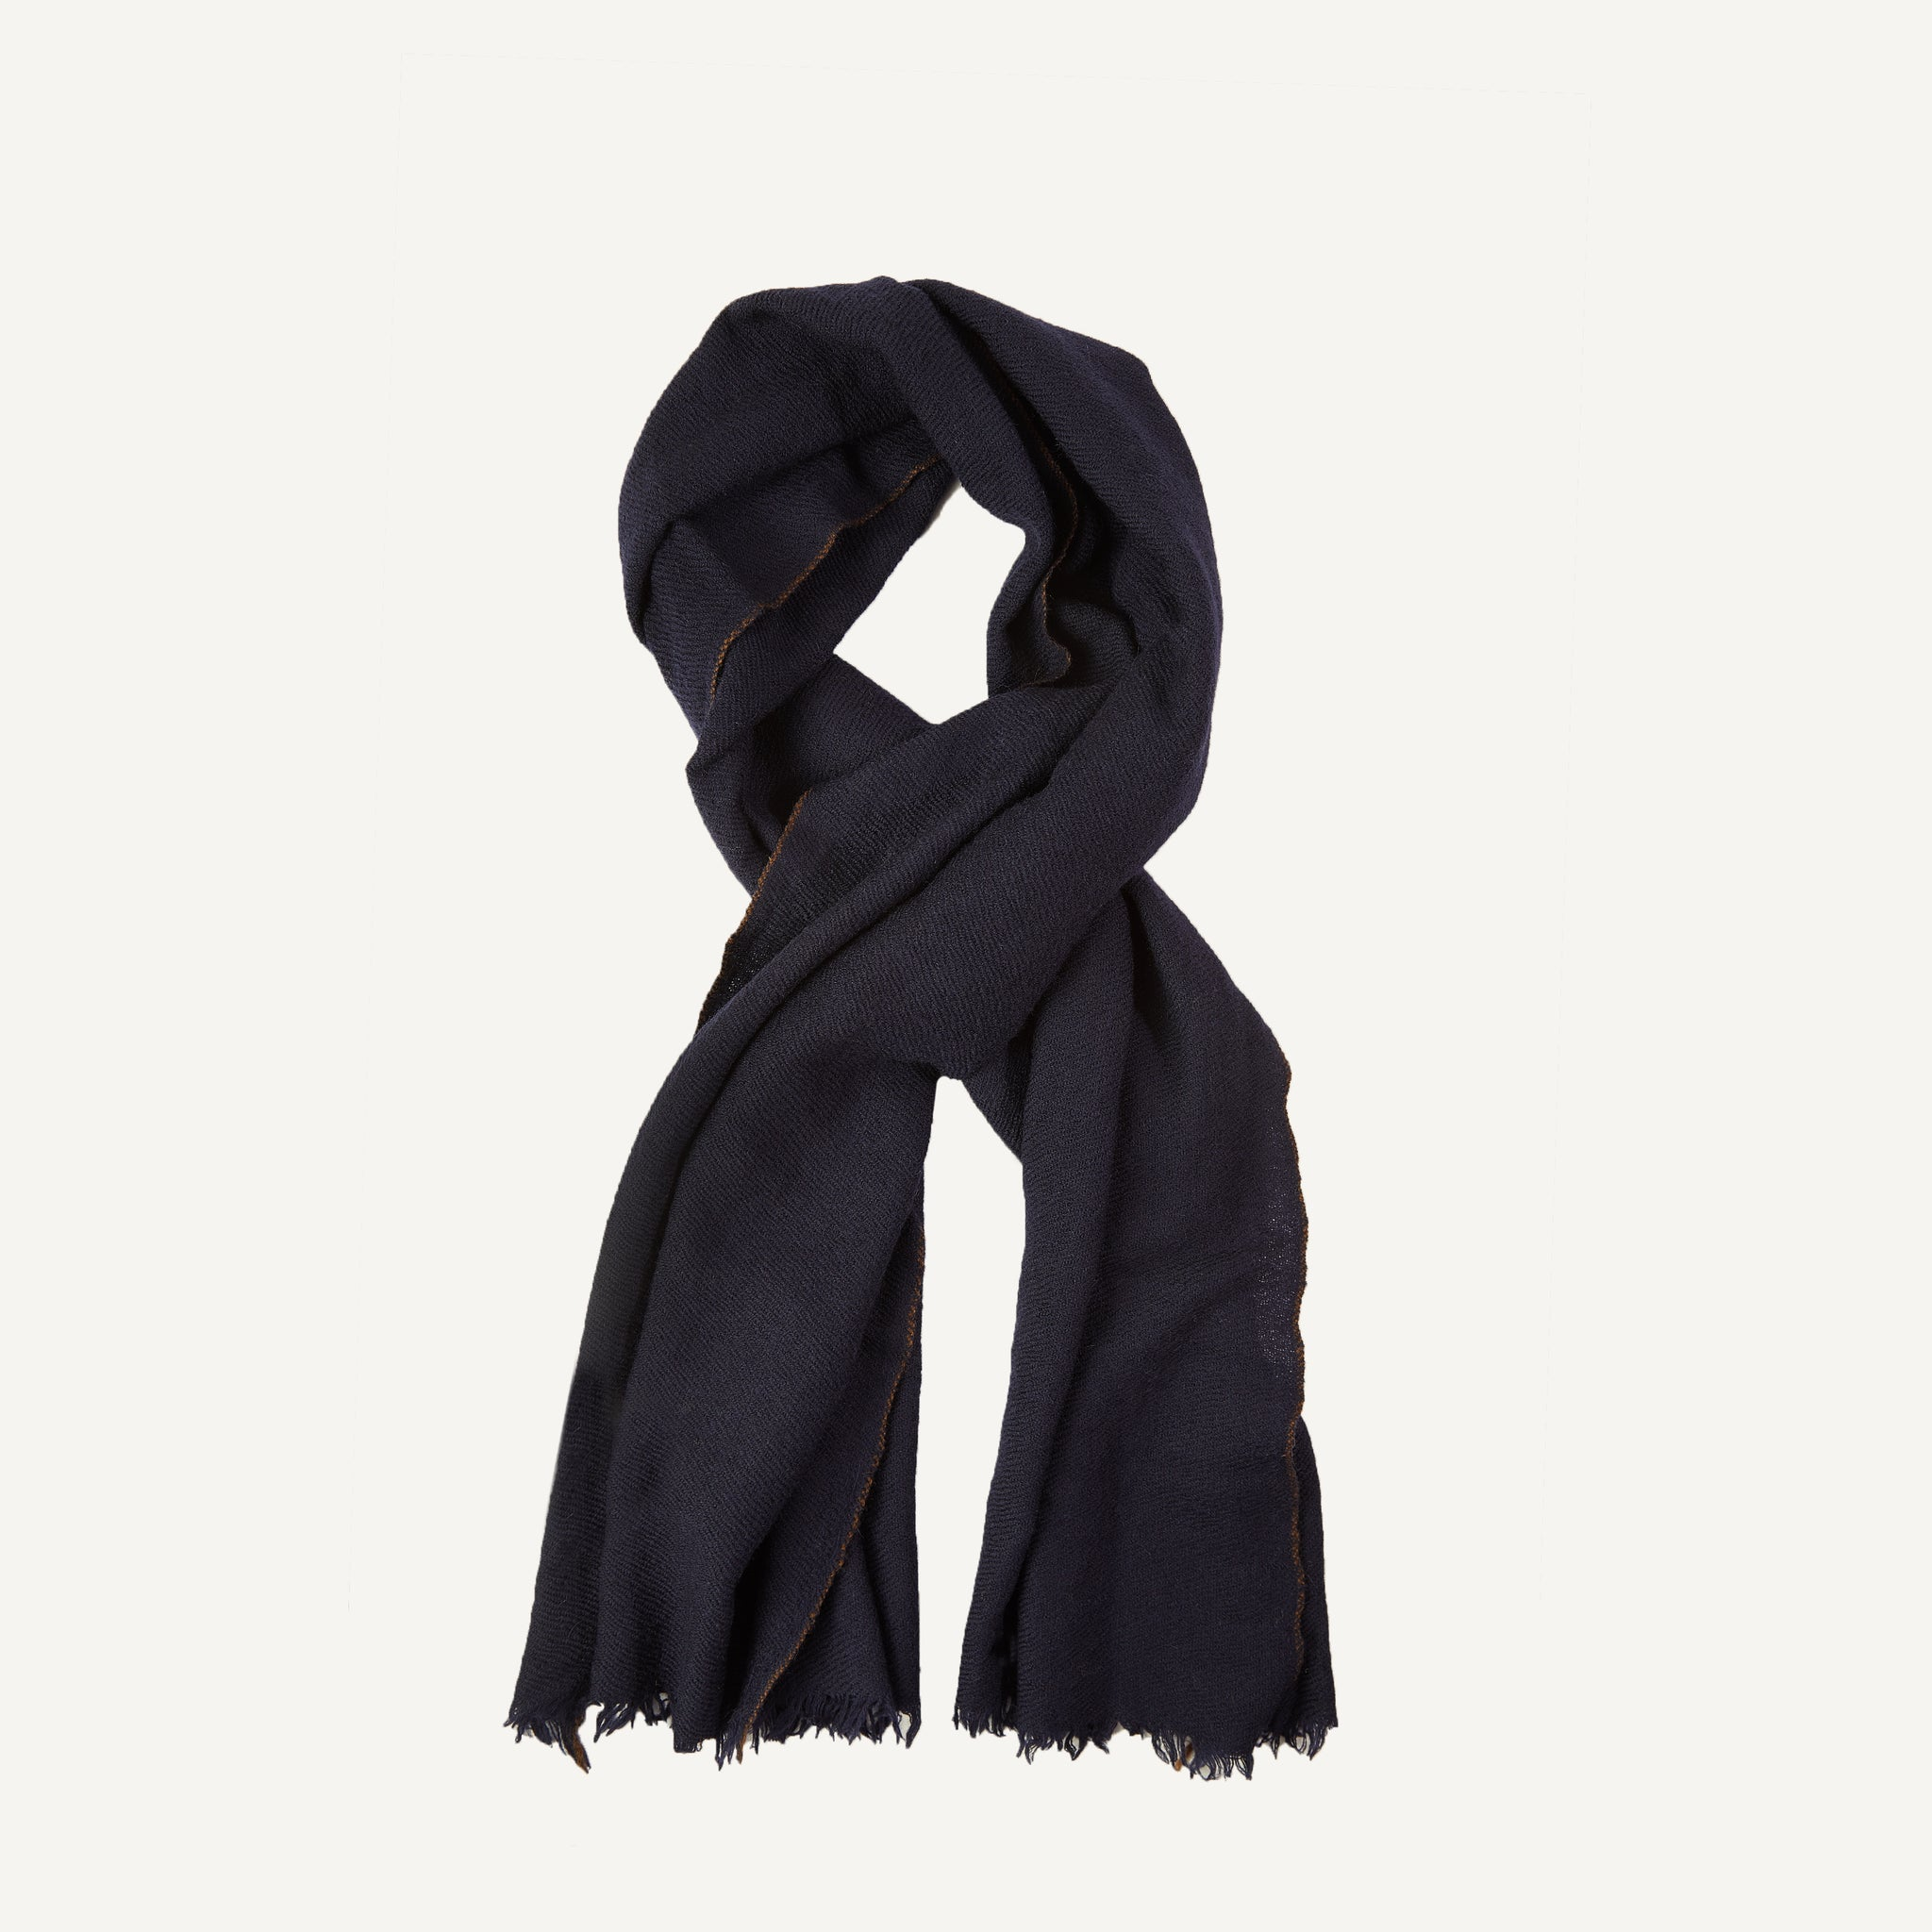 PLAIN GOODS WOOL SCARF